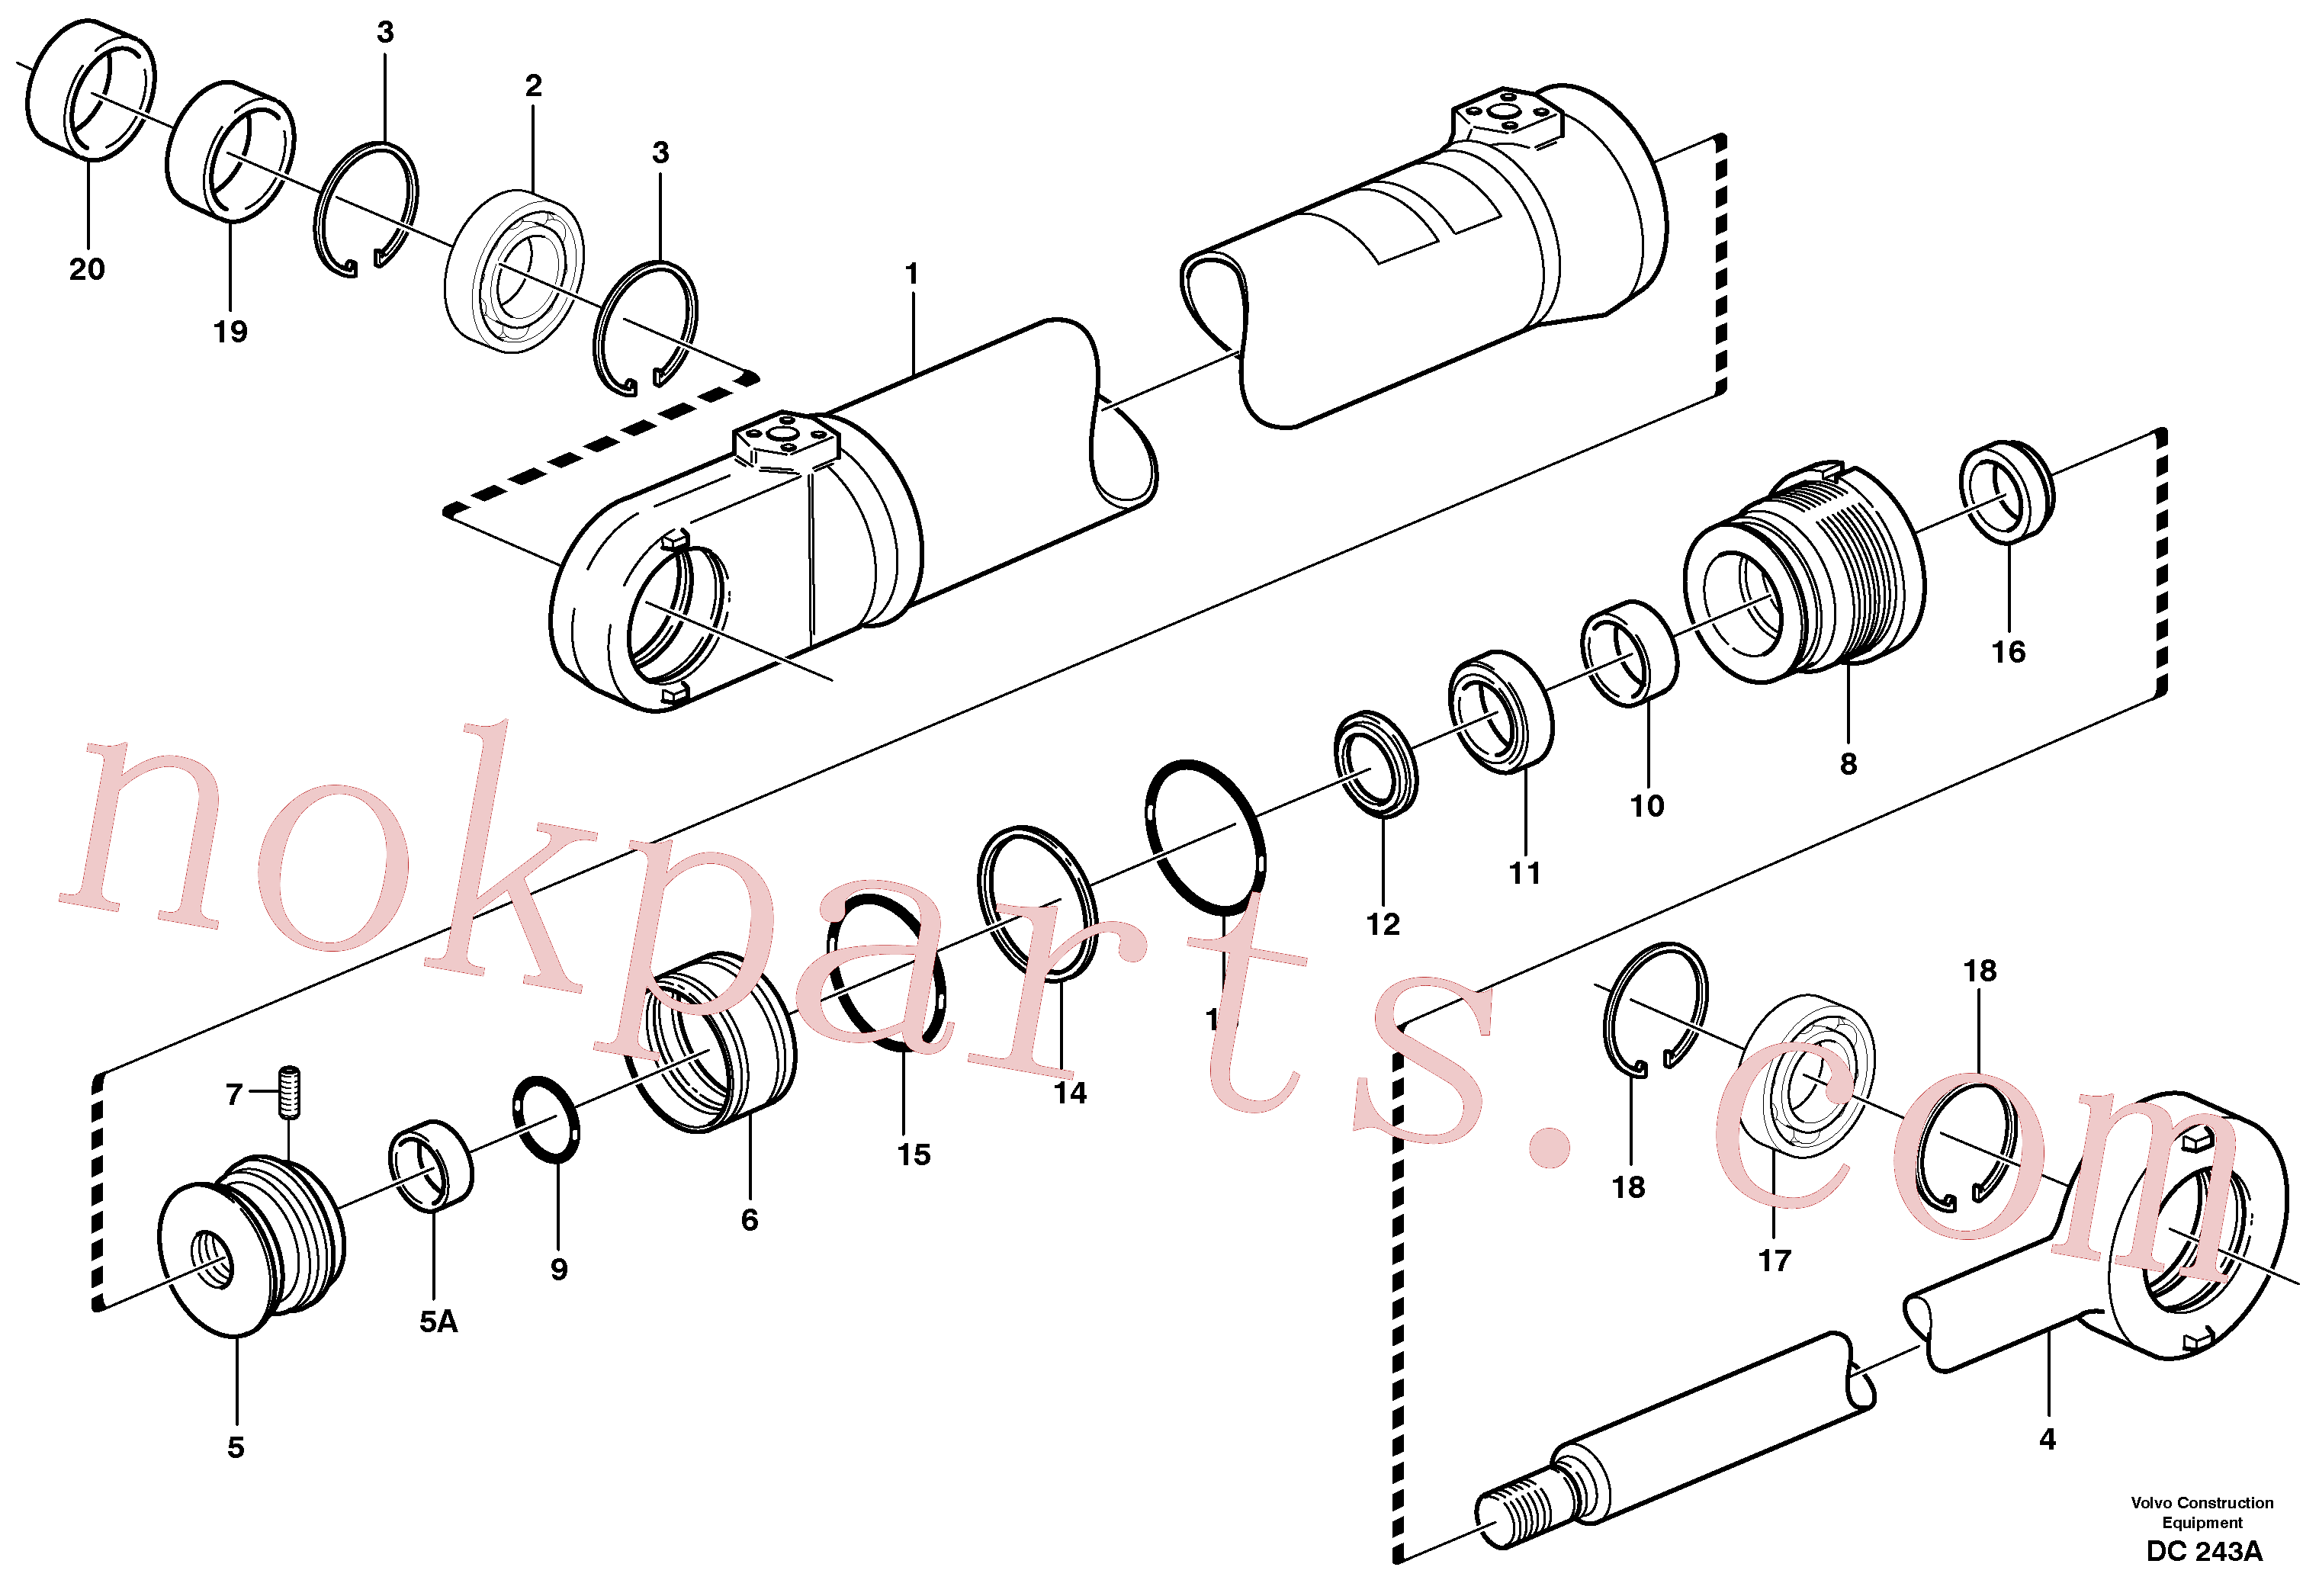 VOE11715960 for Volvo Hydraulic cylinder(DC243A assembly)